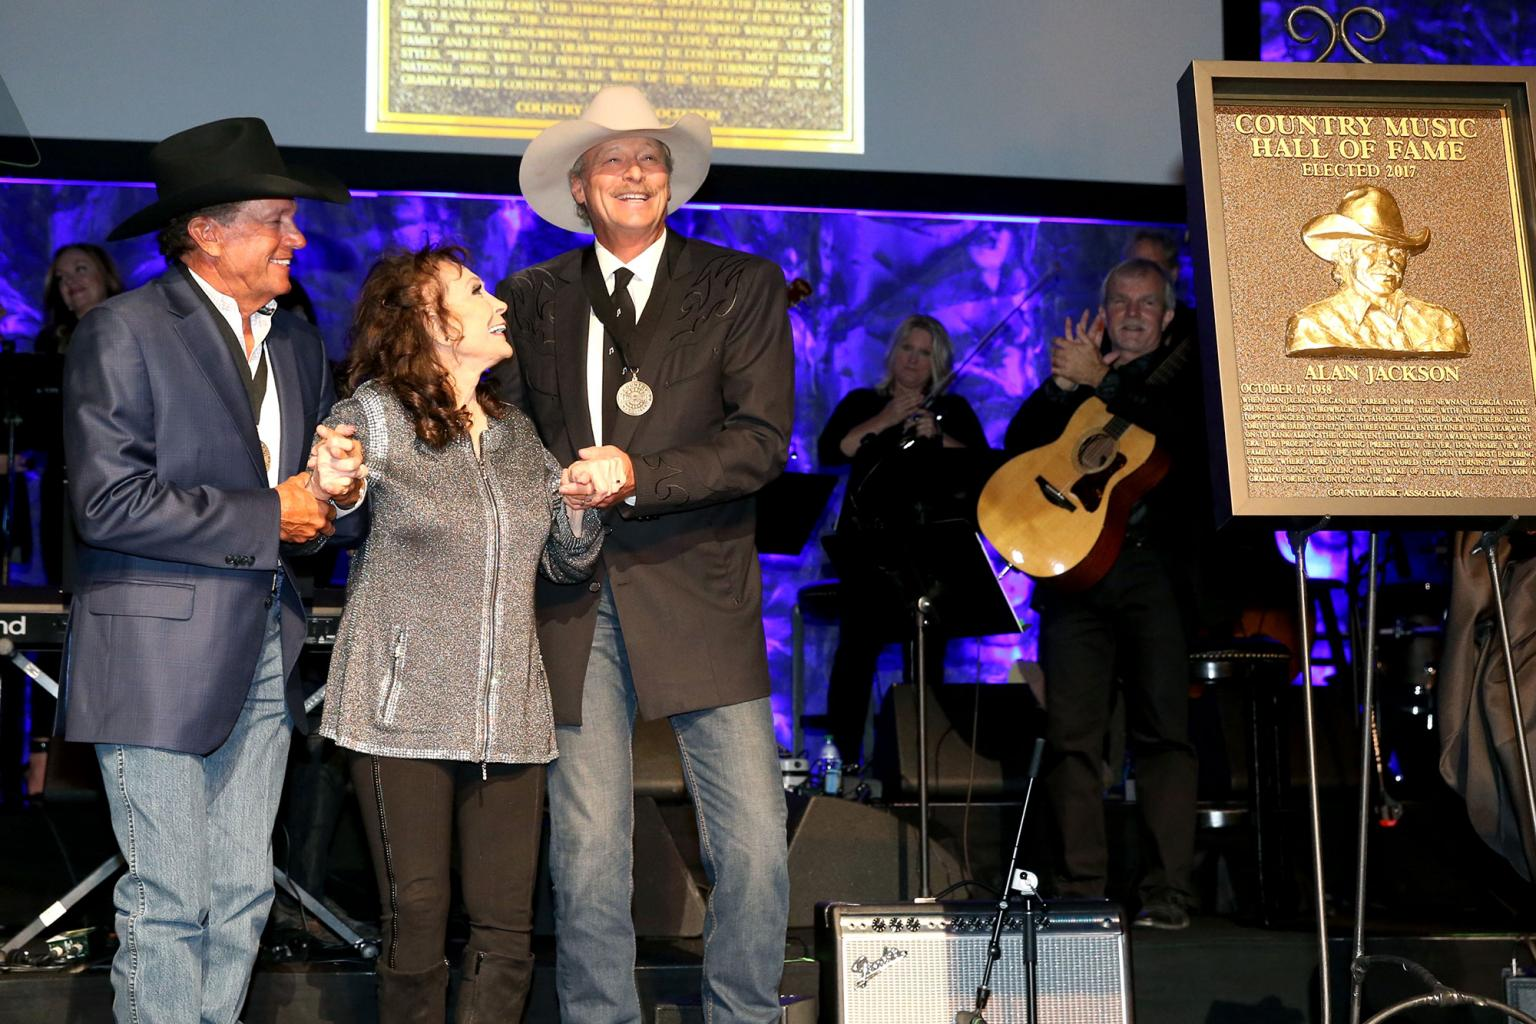 Loretta Lynn  's Surprise Appearance Highlights Alan Jackson  's Hall of Fame Induction:   'I Love You,  Honey!